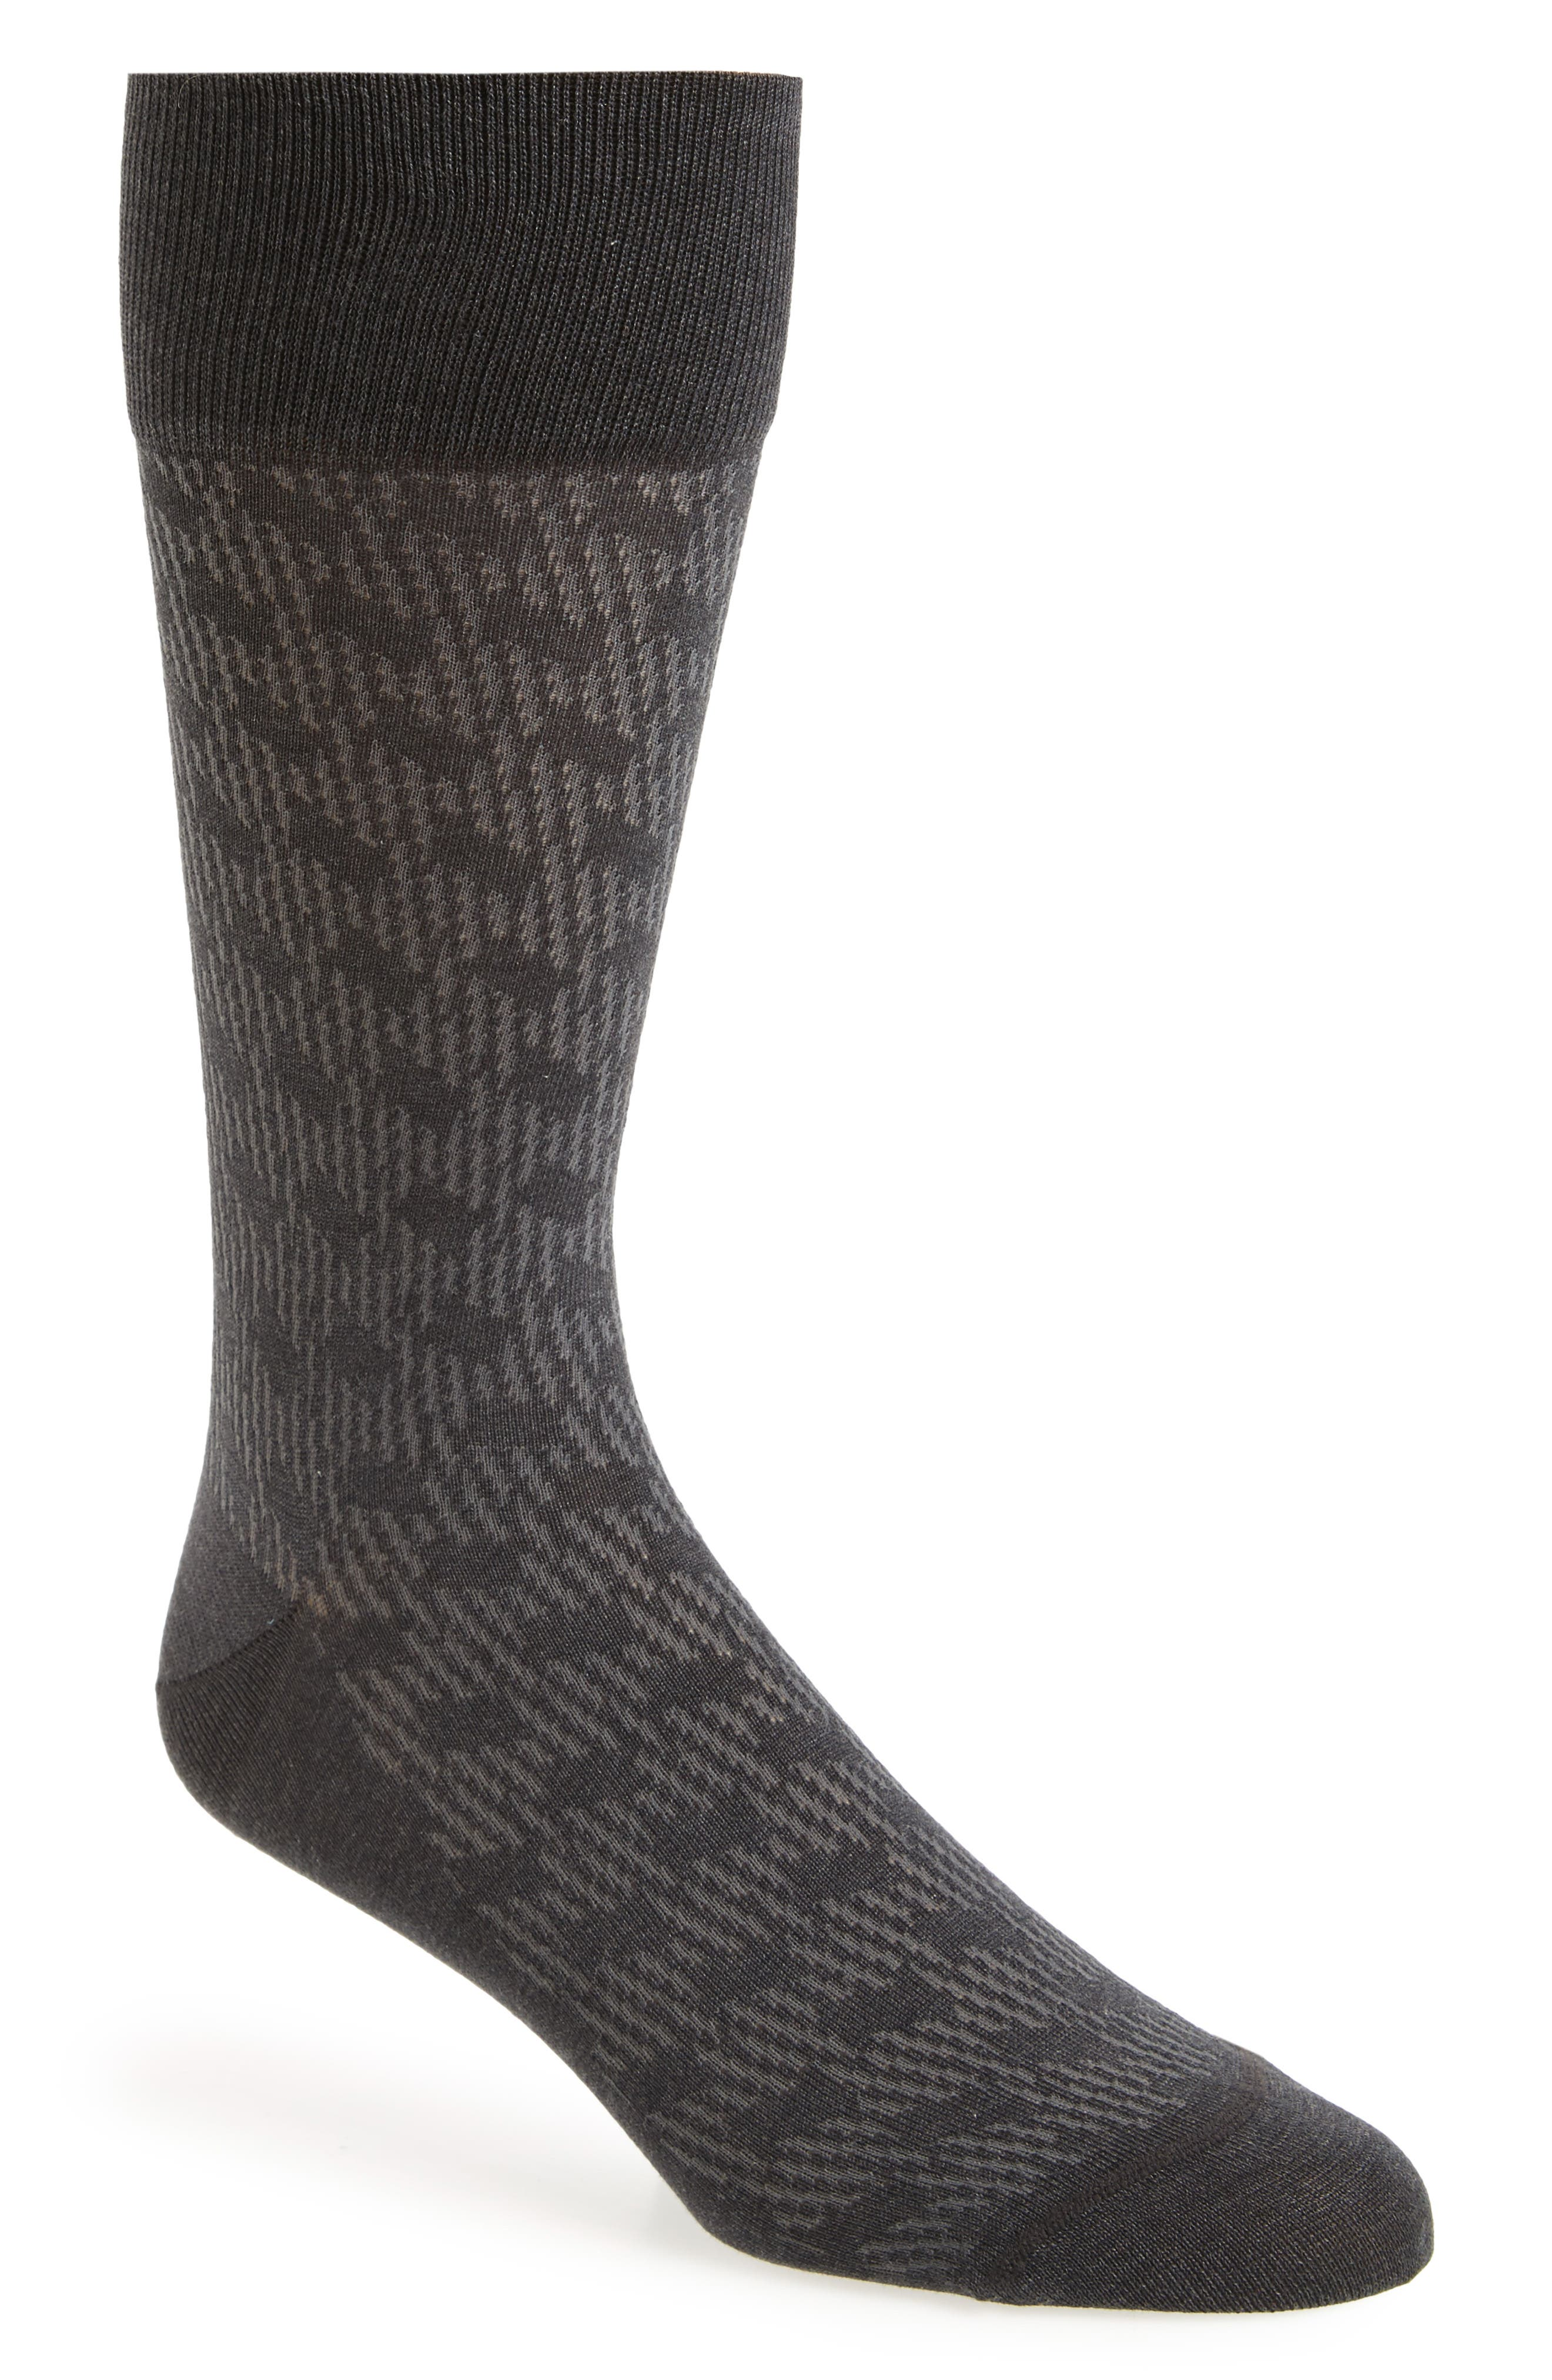 Shadow Rhombus Socks,                             Main thumbnail 1, color,                             Charcoal Heather